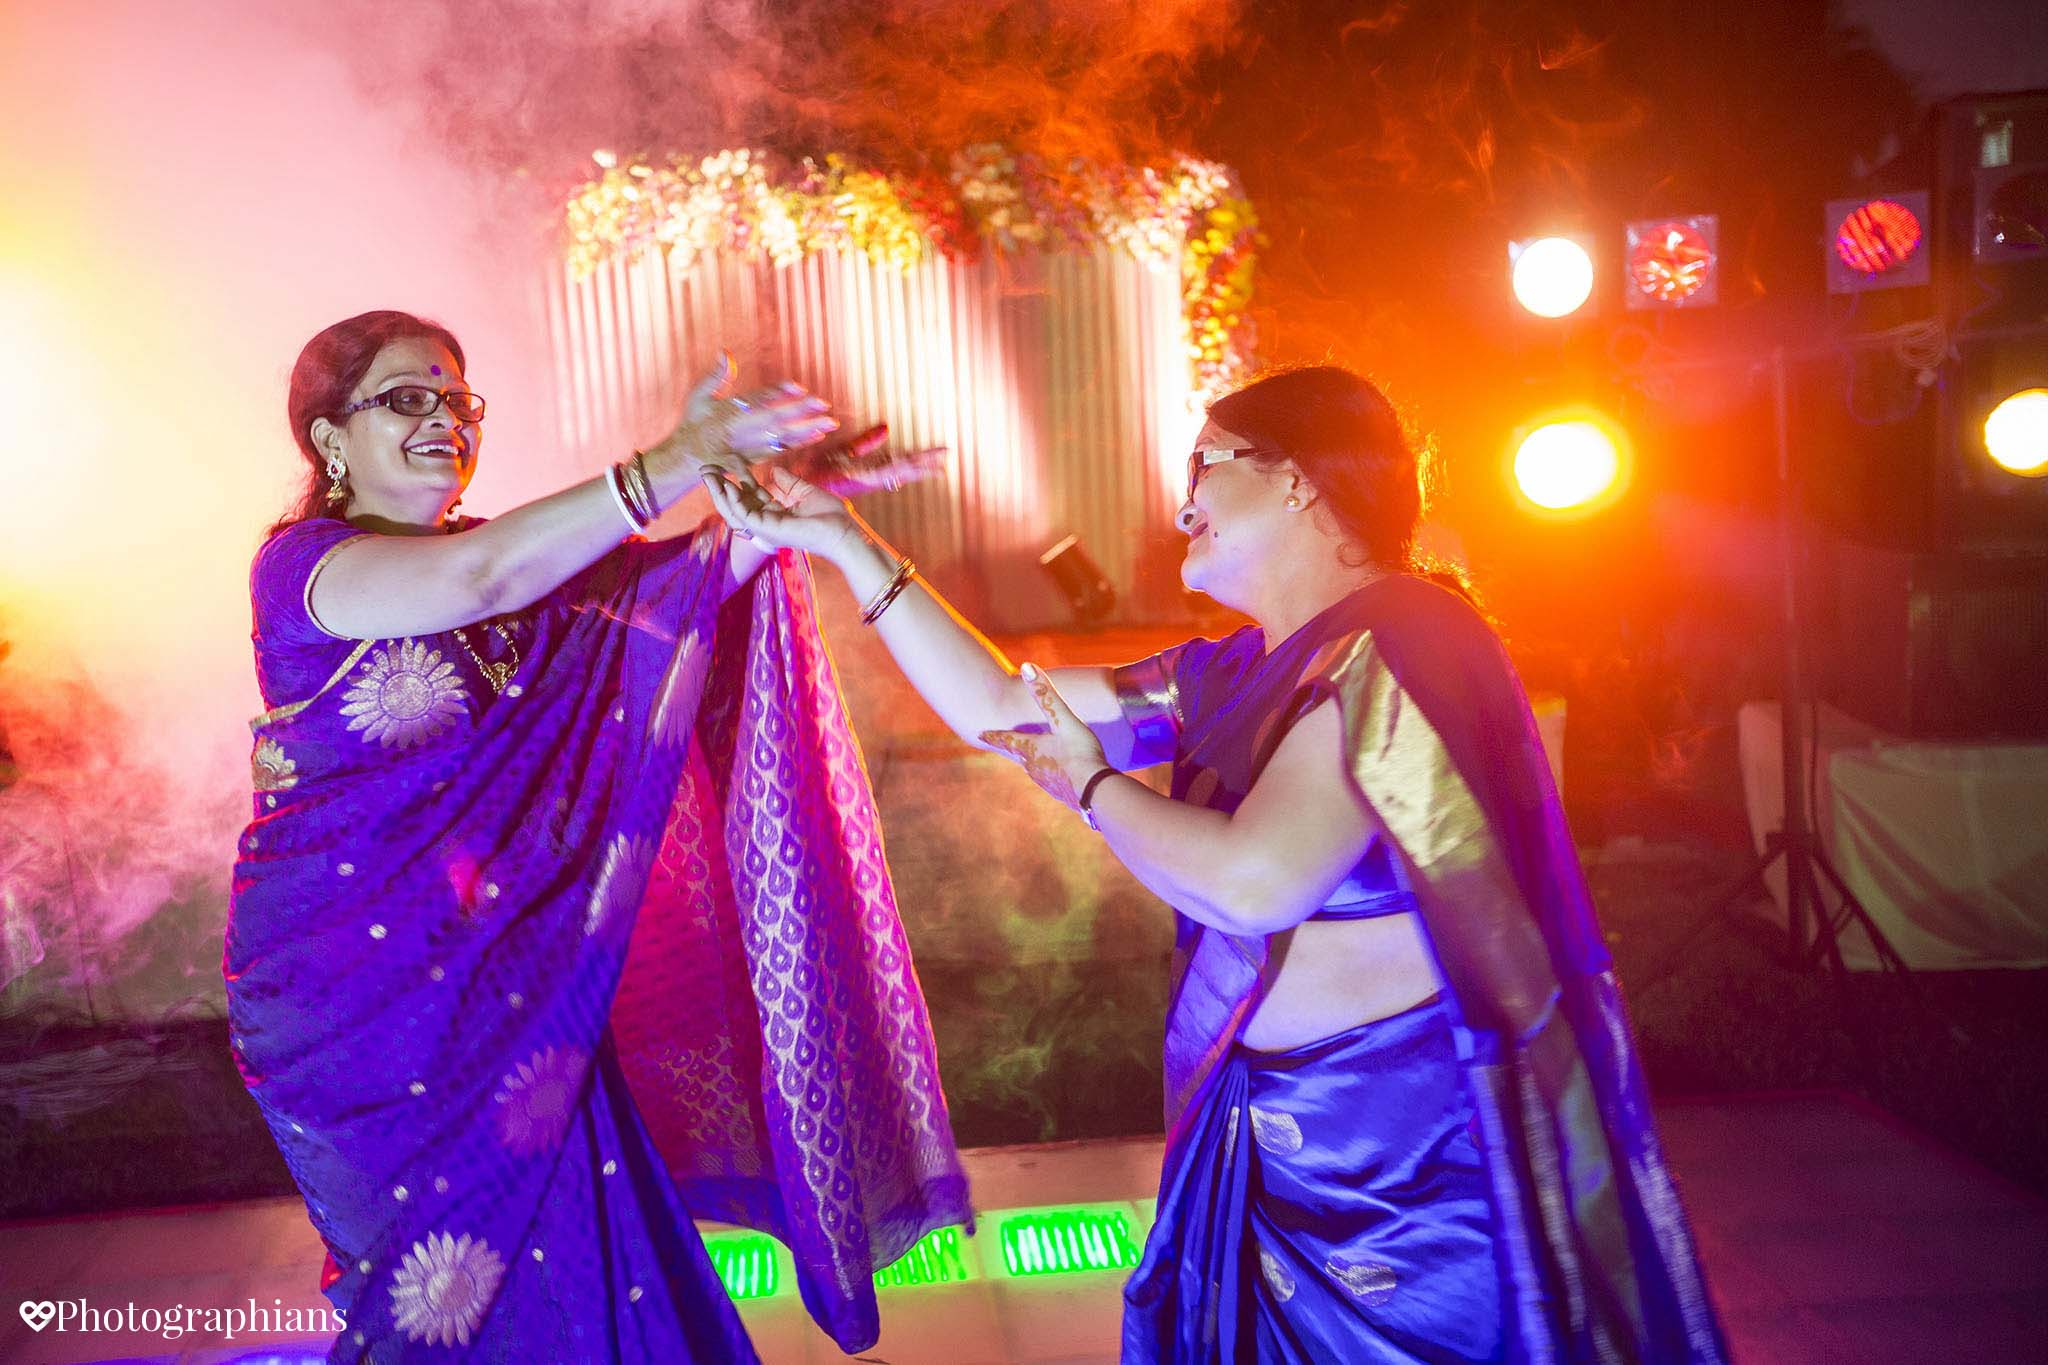 Photographians_Indian_Destination_Wedding_194